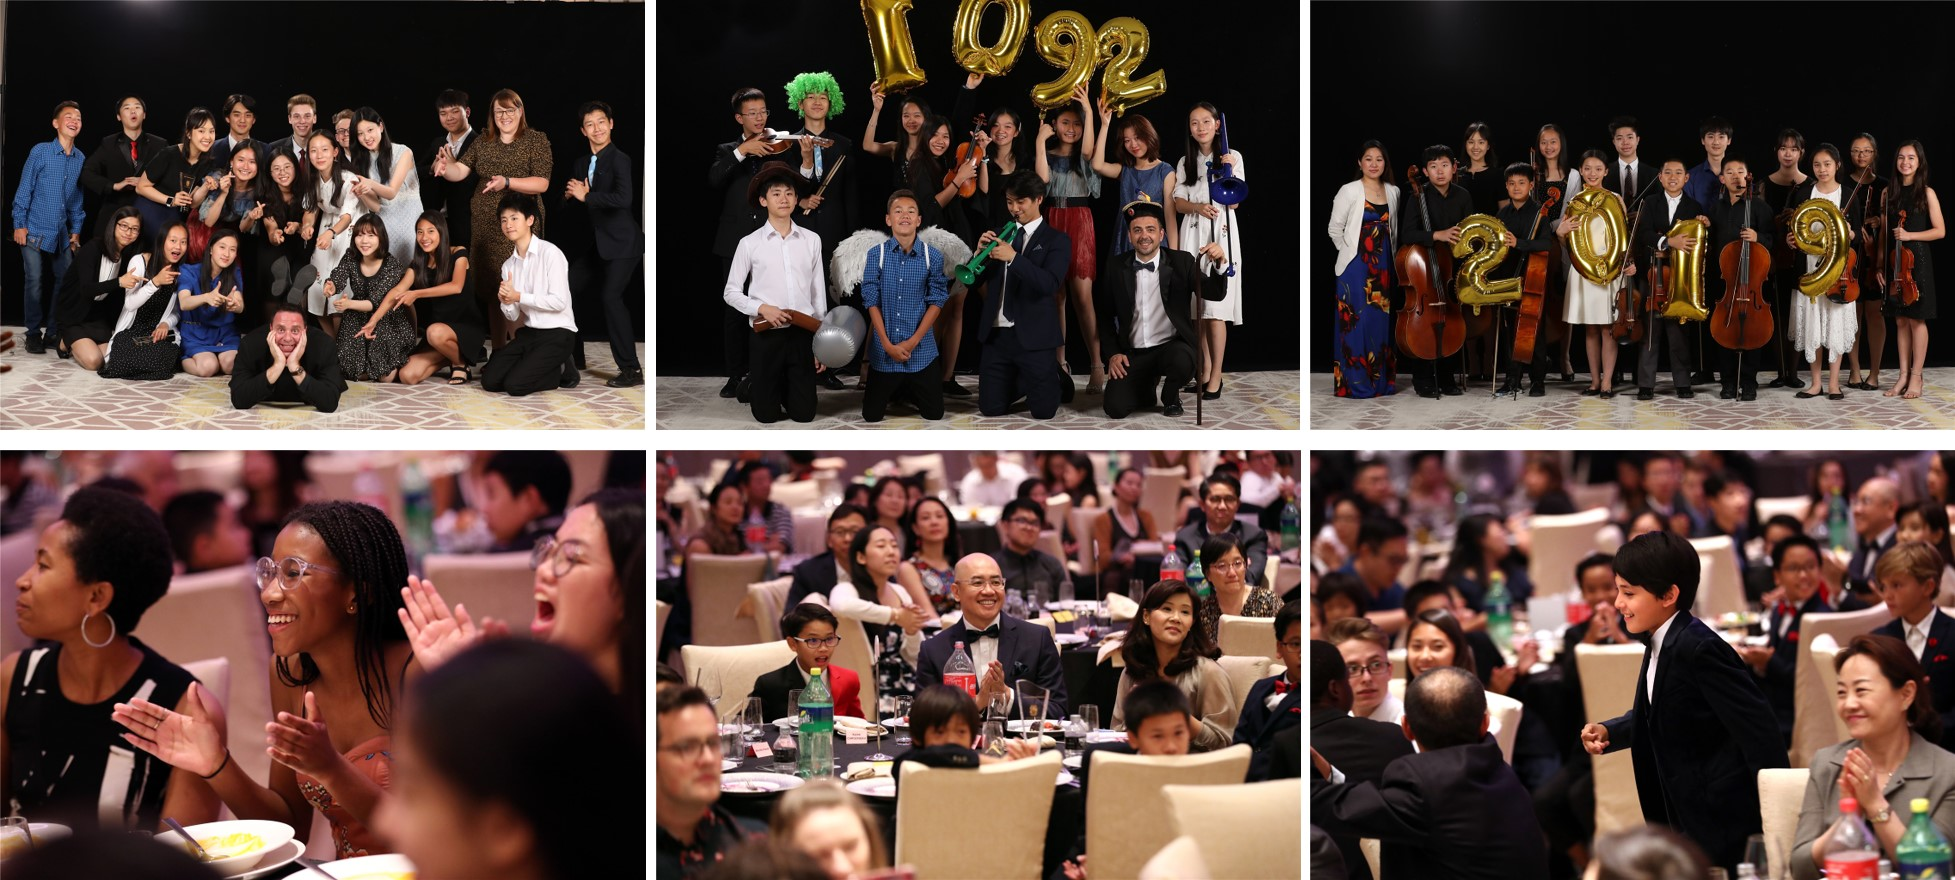 dcb-music-and-drama-awards-group-photos-北京德威英国国际学校